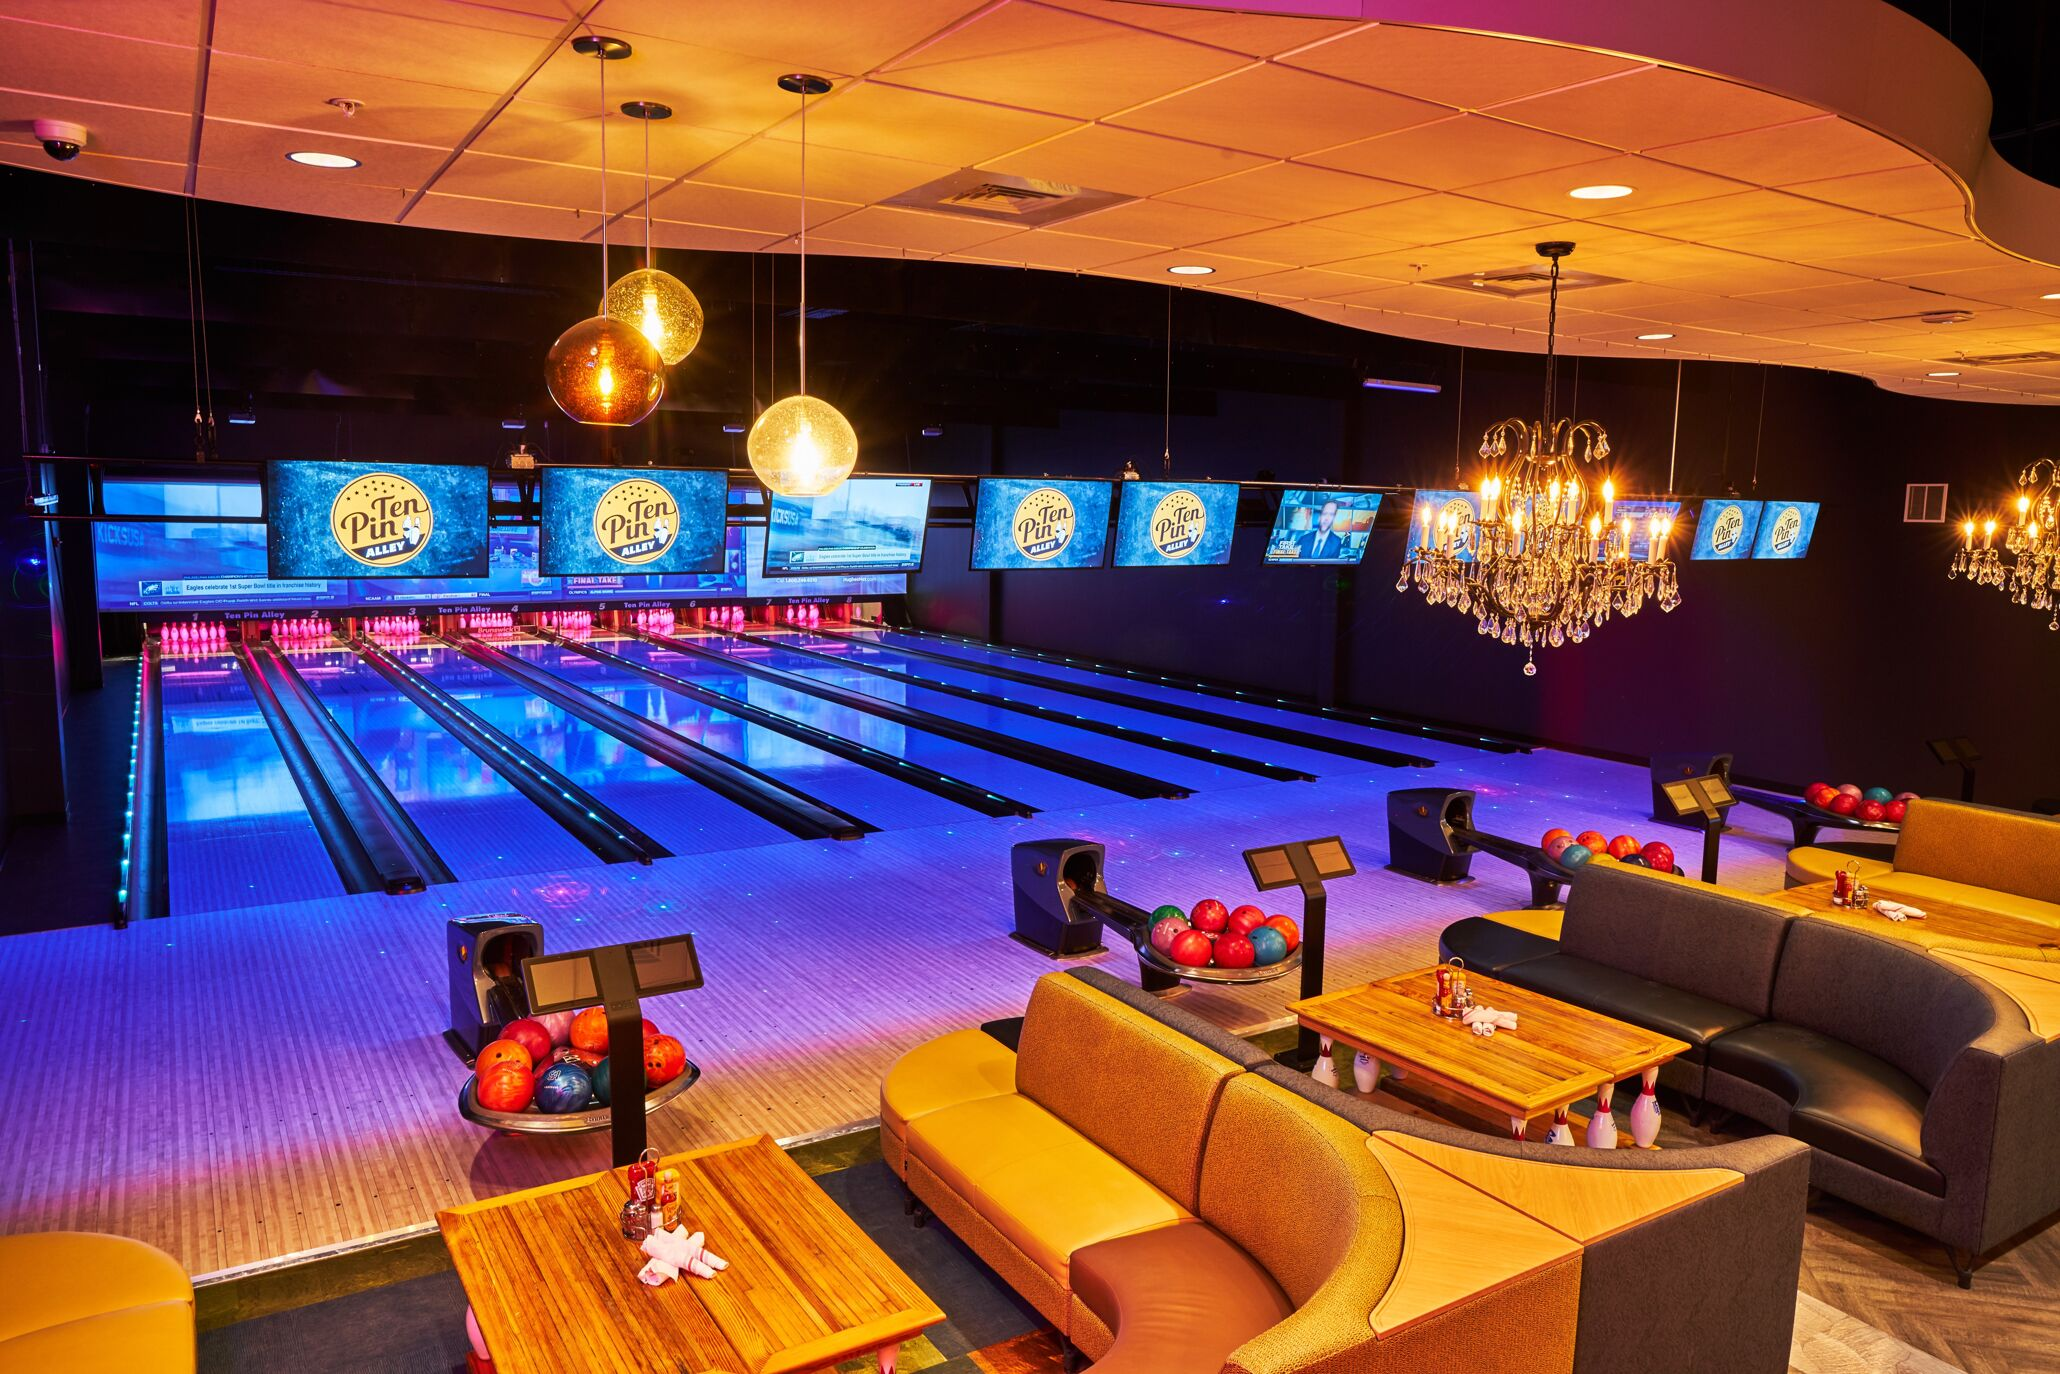 Ten Pin Alley | Brunswick Bowling